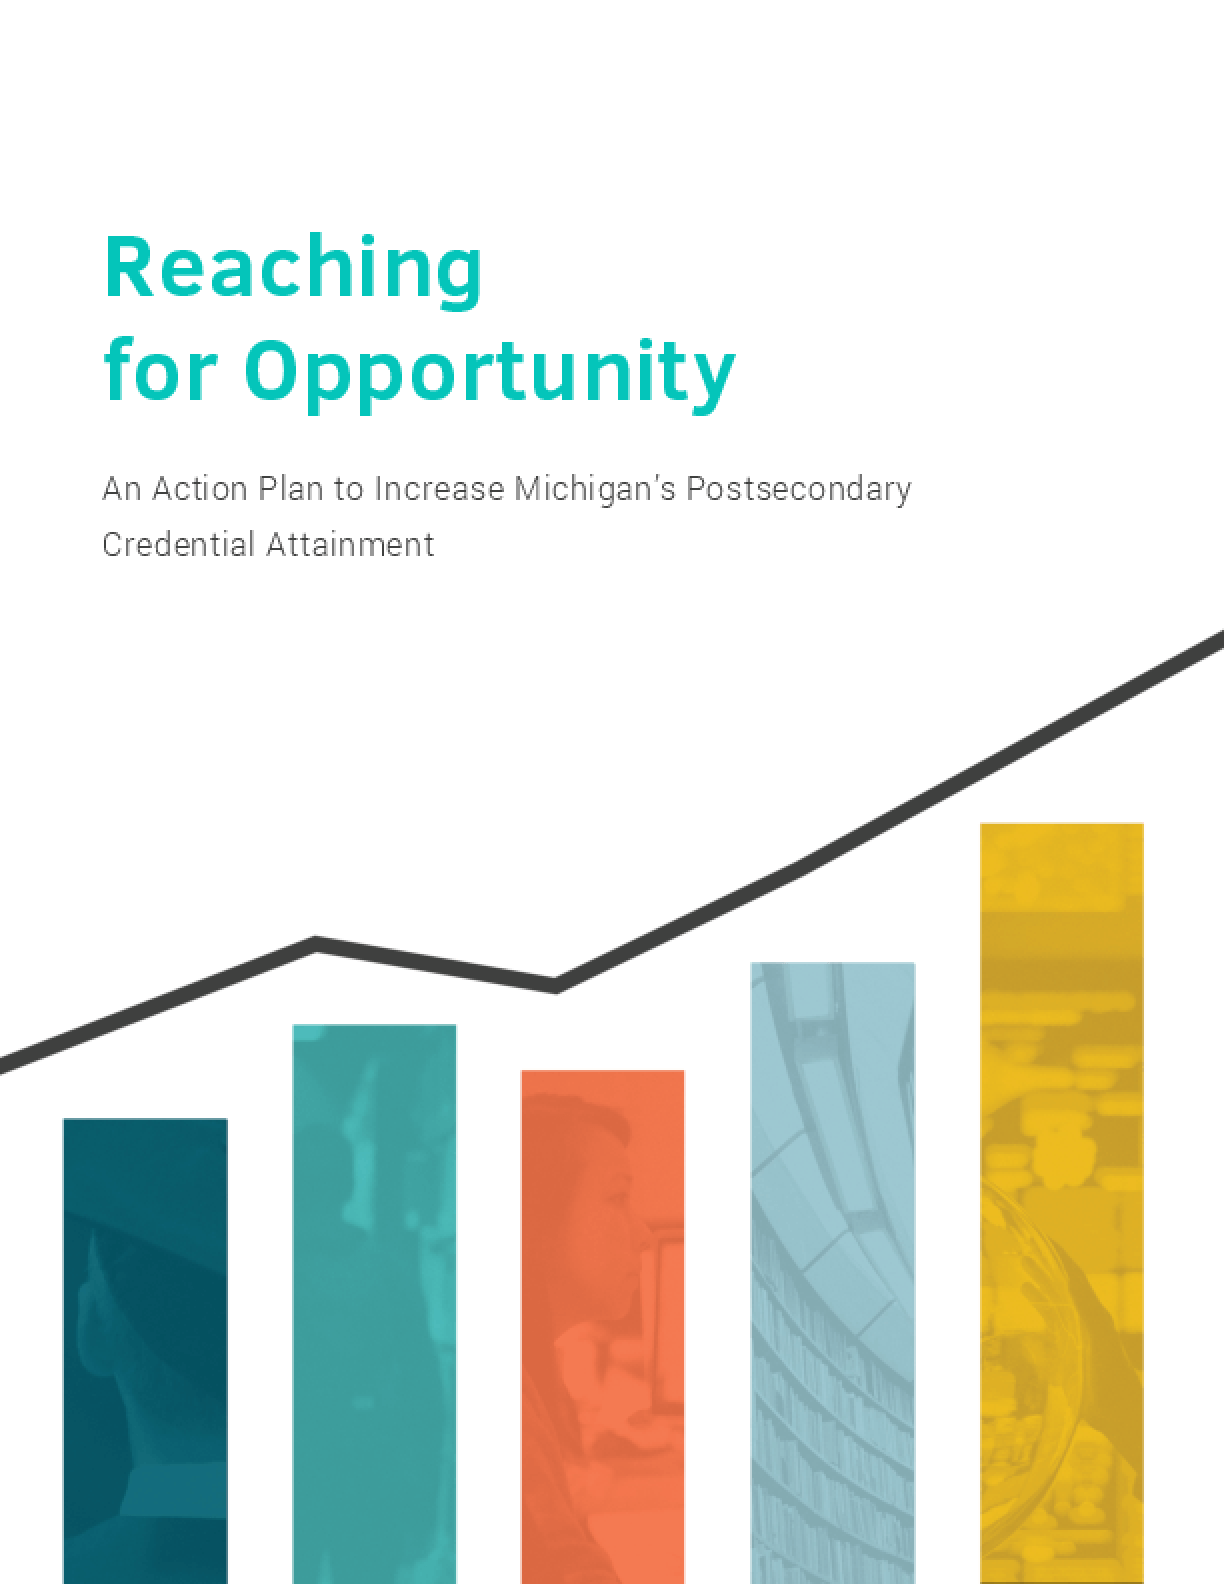 Reaching for Opportunity: An Action Plan to Increase Michigan's Postsecondary Credential Attainment